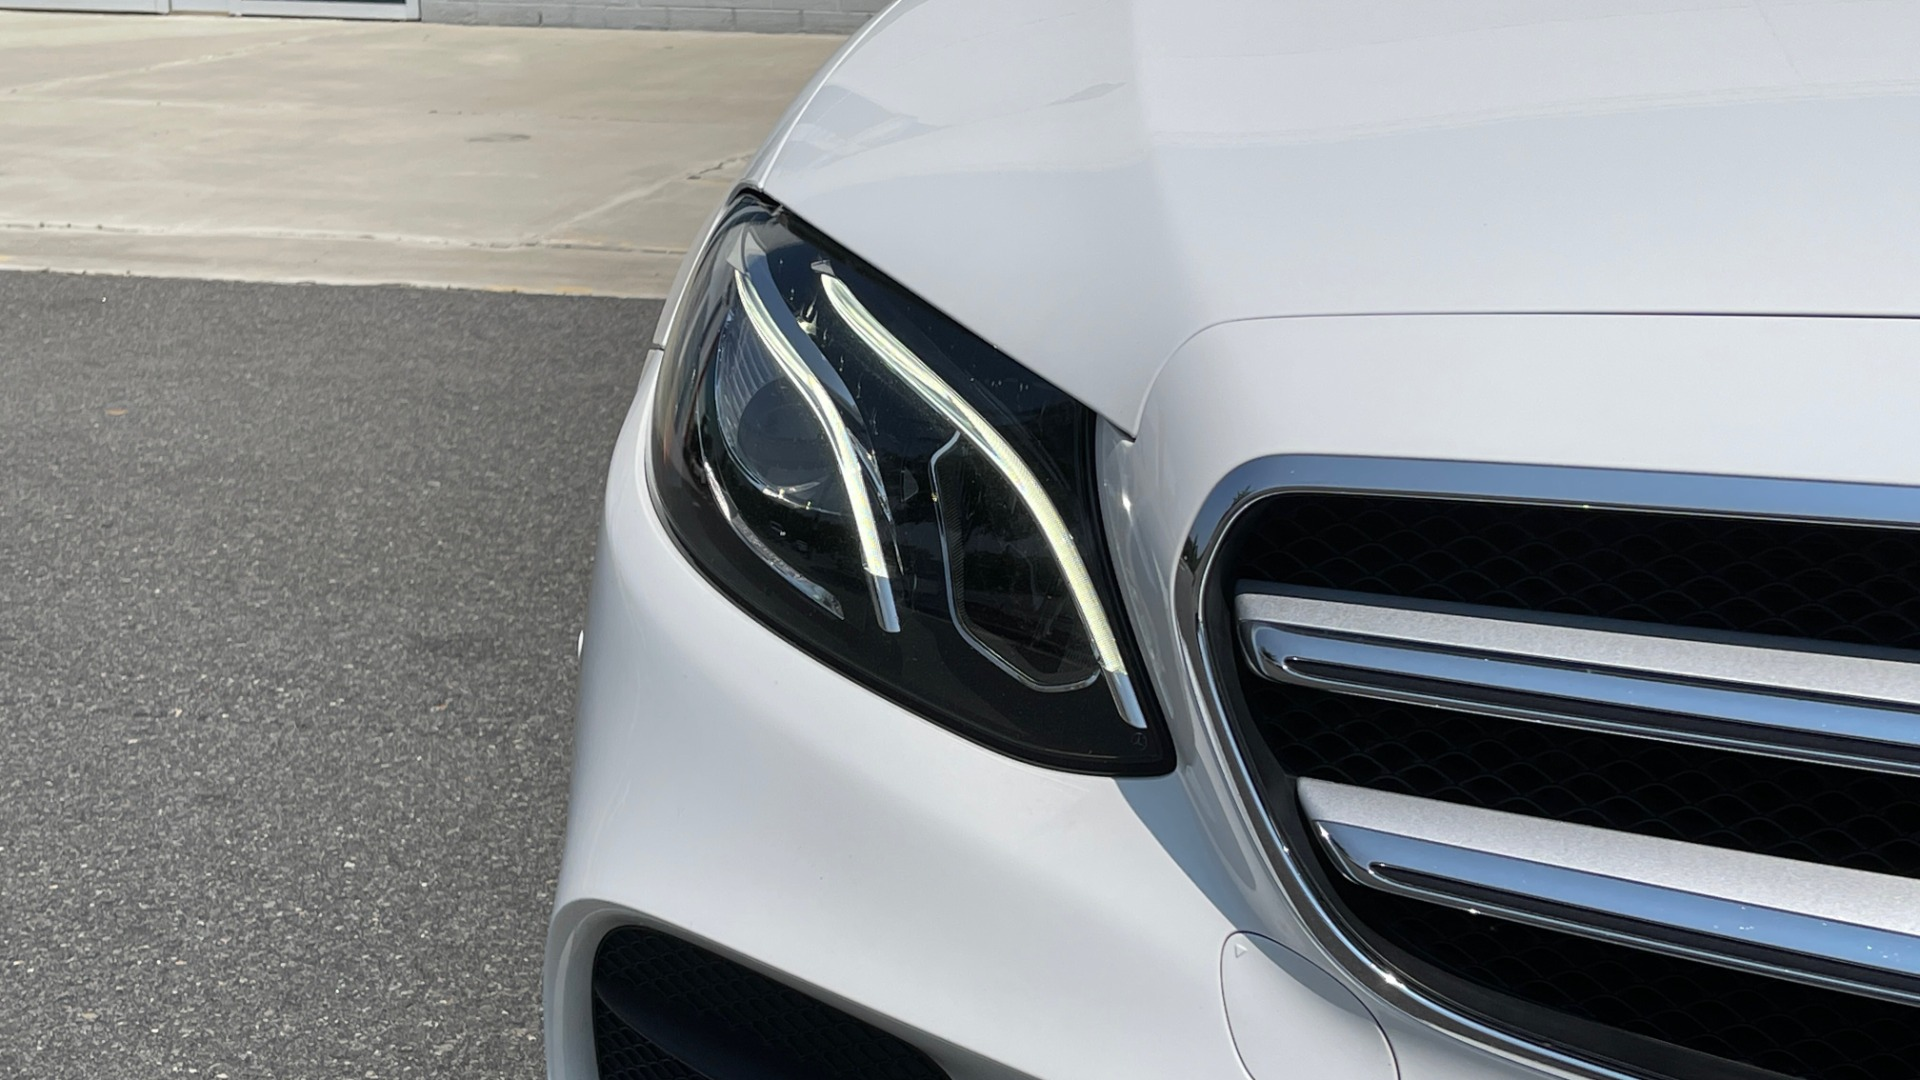 Used 2018 Mercedes-Benz E-CLASS E 300 / 2.0L I4 TURBO / NAV / BSA / SUNROOF / REARVIEW for sale Sold at Formula Imports in Charlotte NC 28227 15